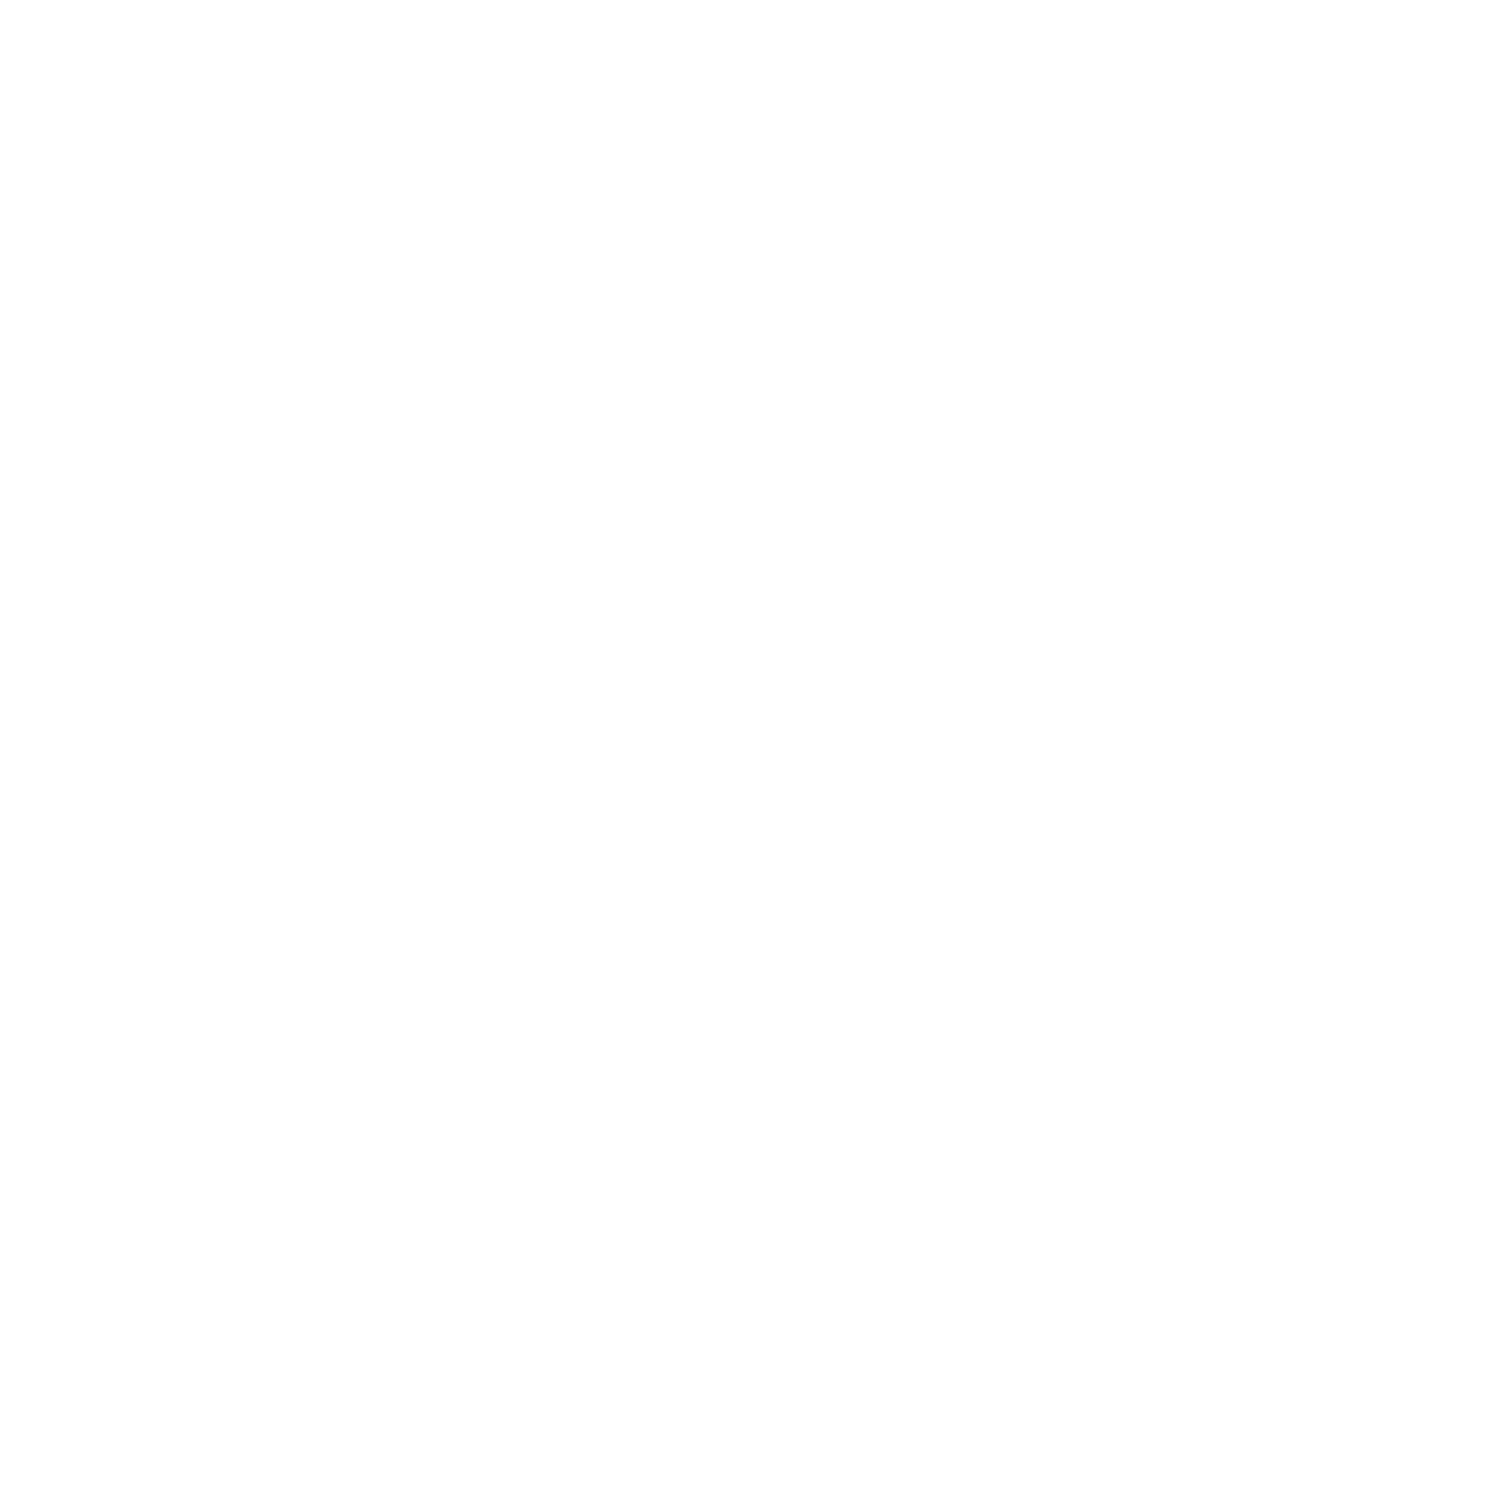 The Muna Love Affair